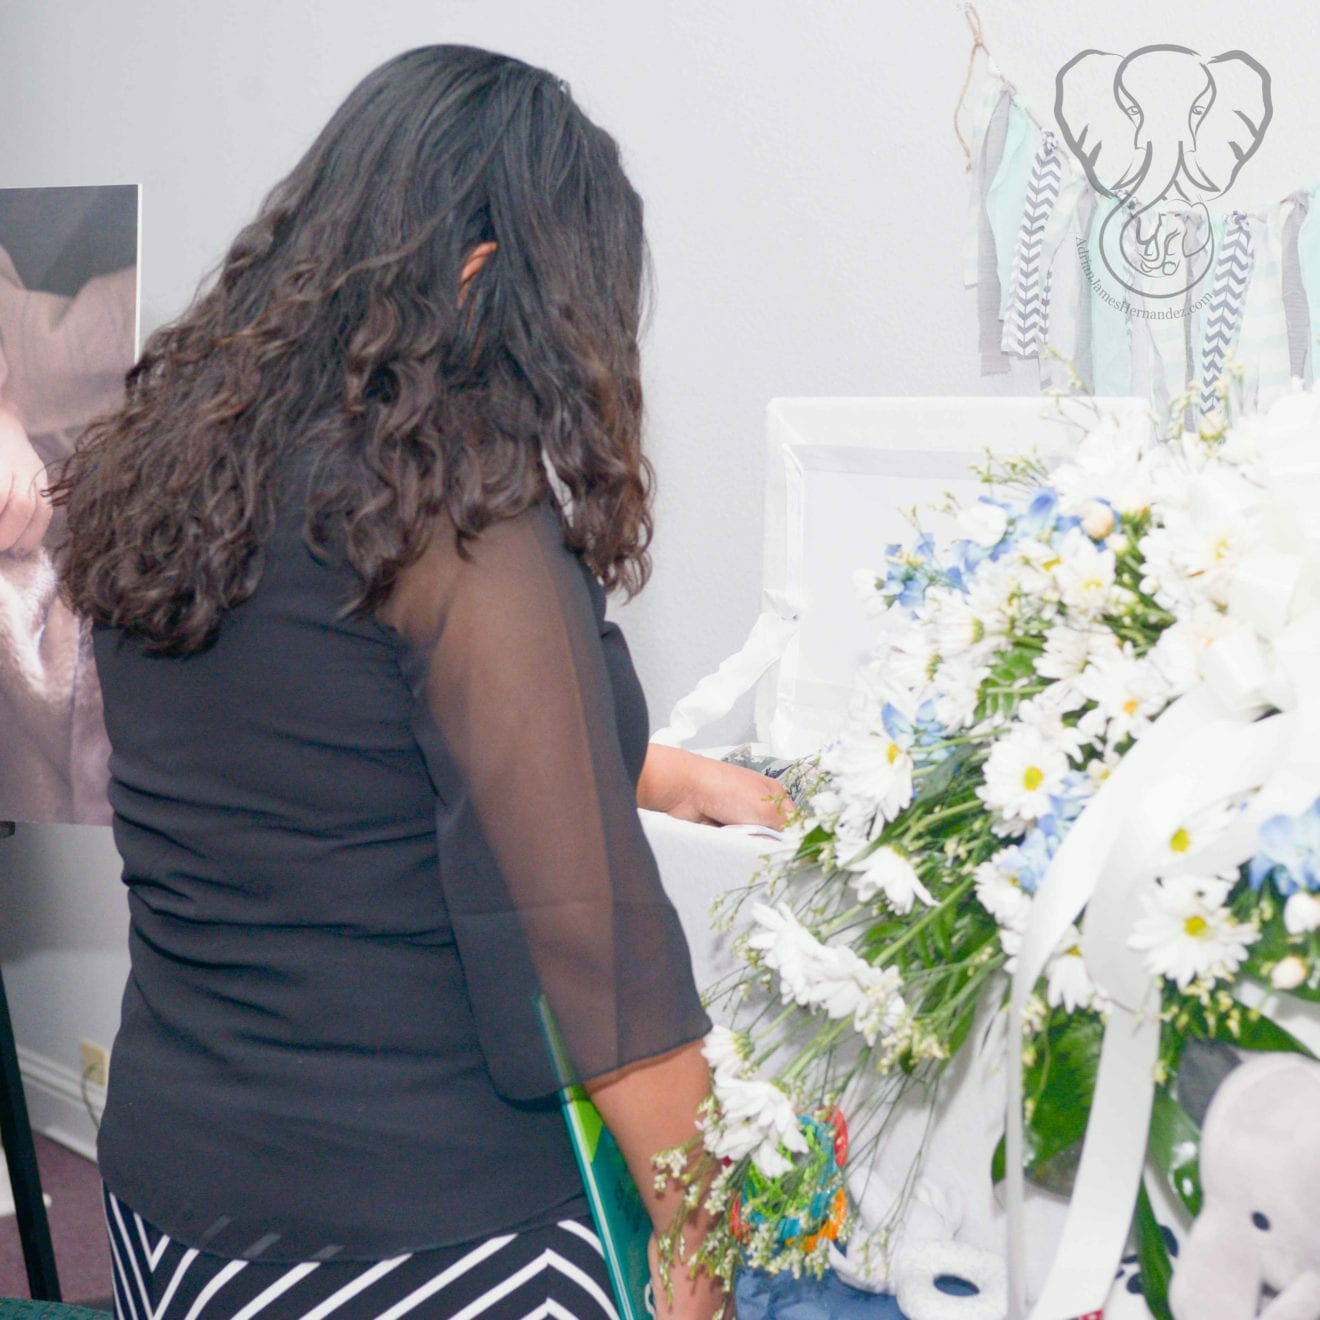 Miranda standing in front of Adrian's casket at his funeral. She is wearing black and facing away from the camera. The casket is white, with a spray of white daisies and bluebonnets on top. Miranda's hand is reaching into the casket to touch her son. (Modern Lux Photography)